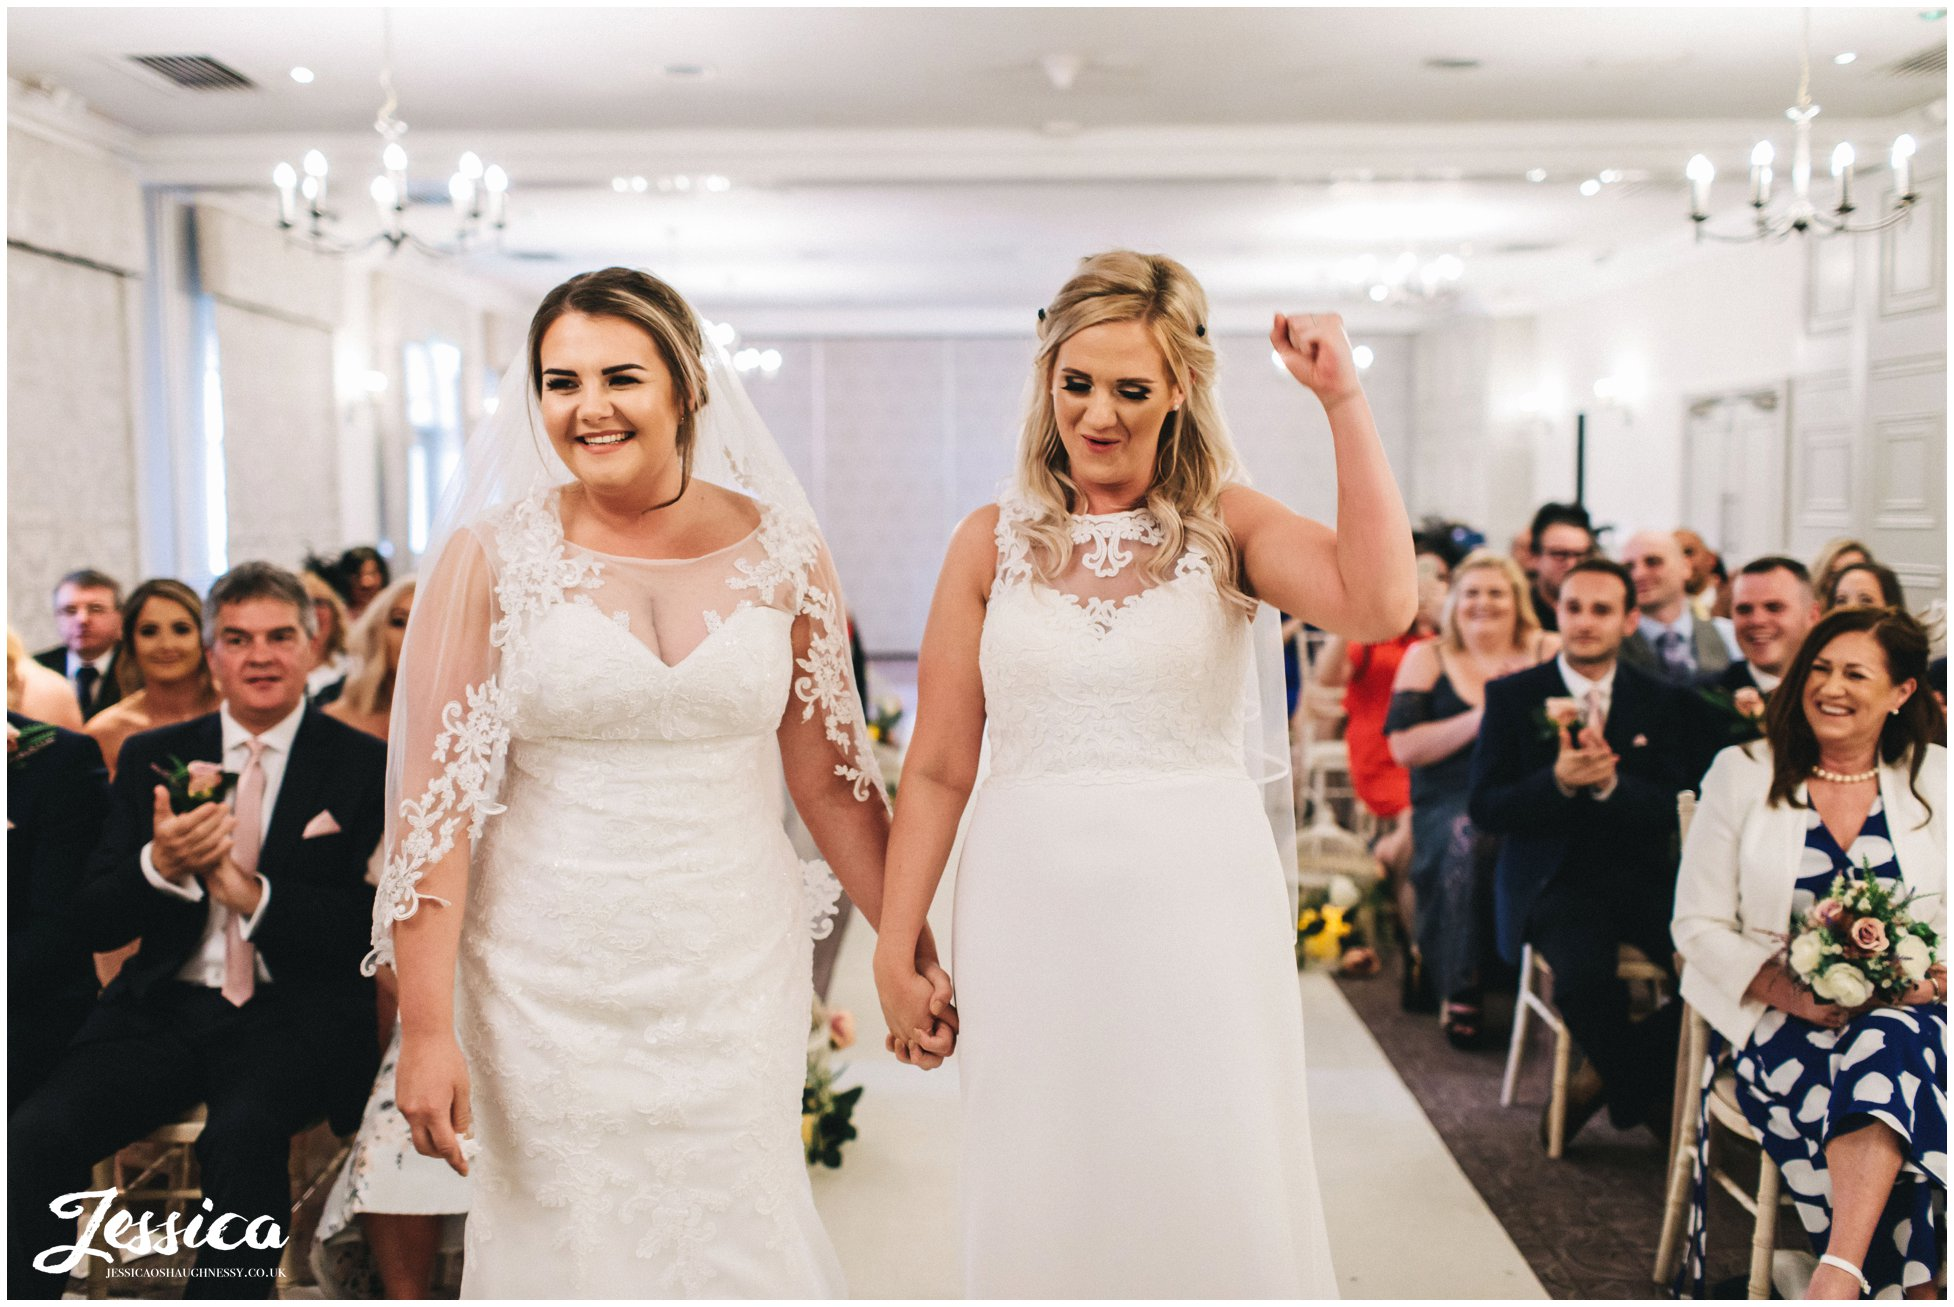 one bride cheers after they exchange their vows